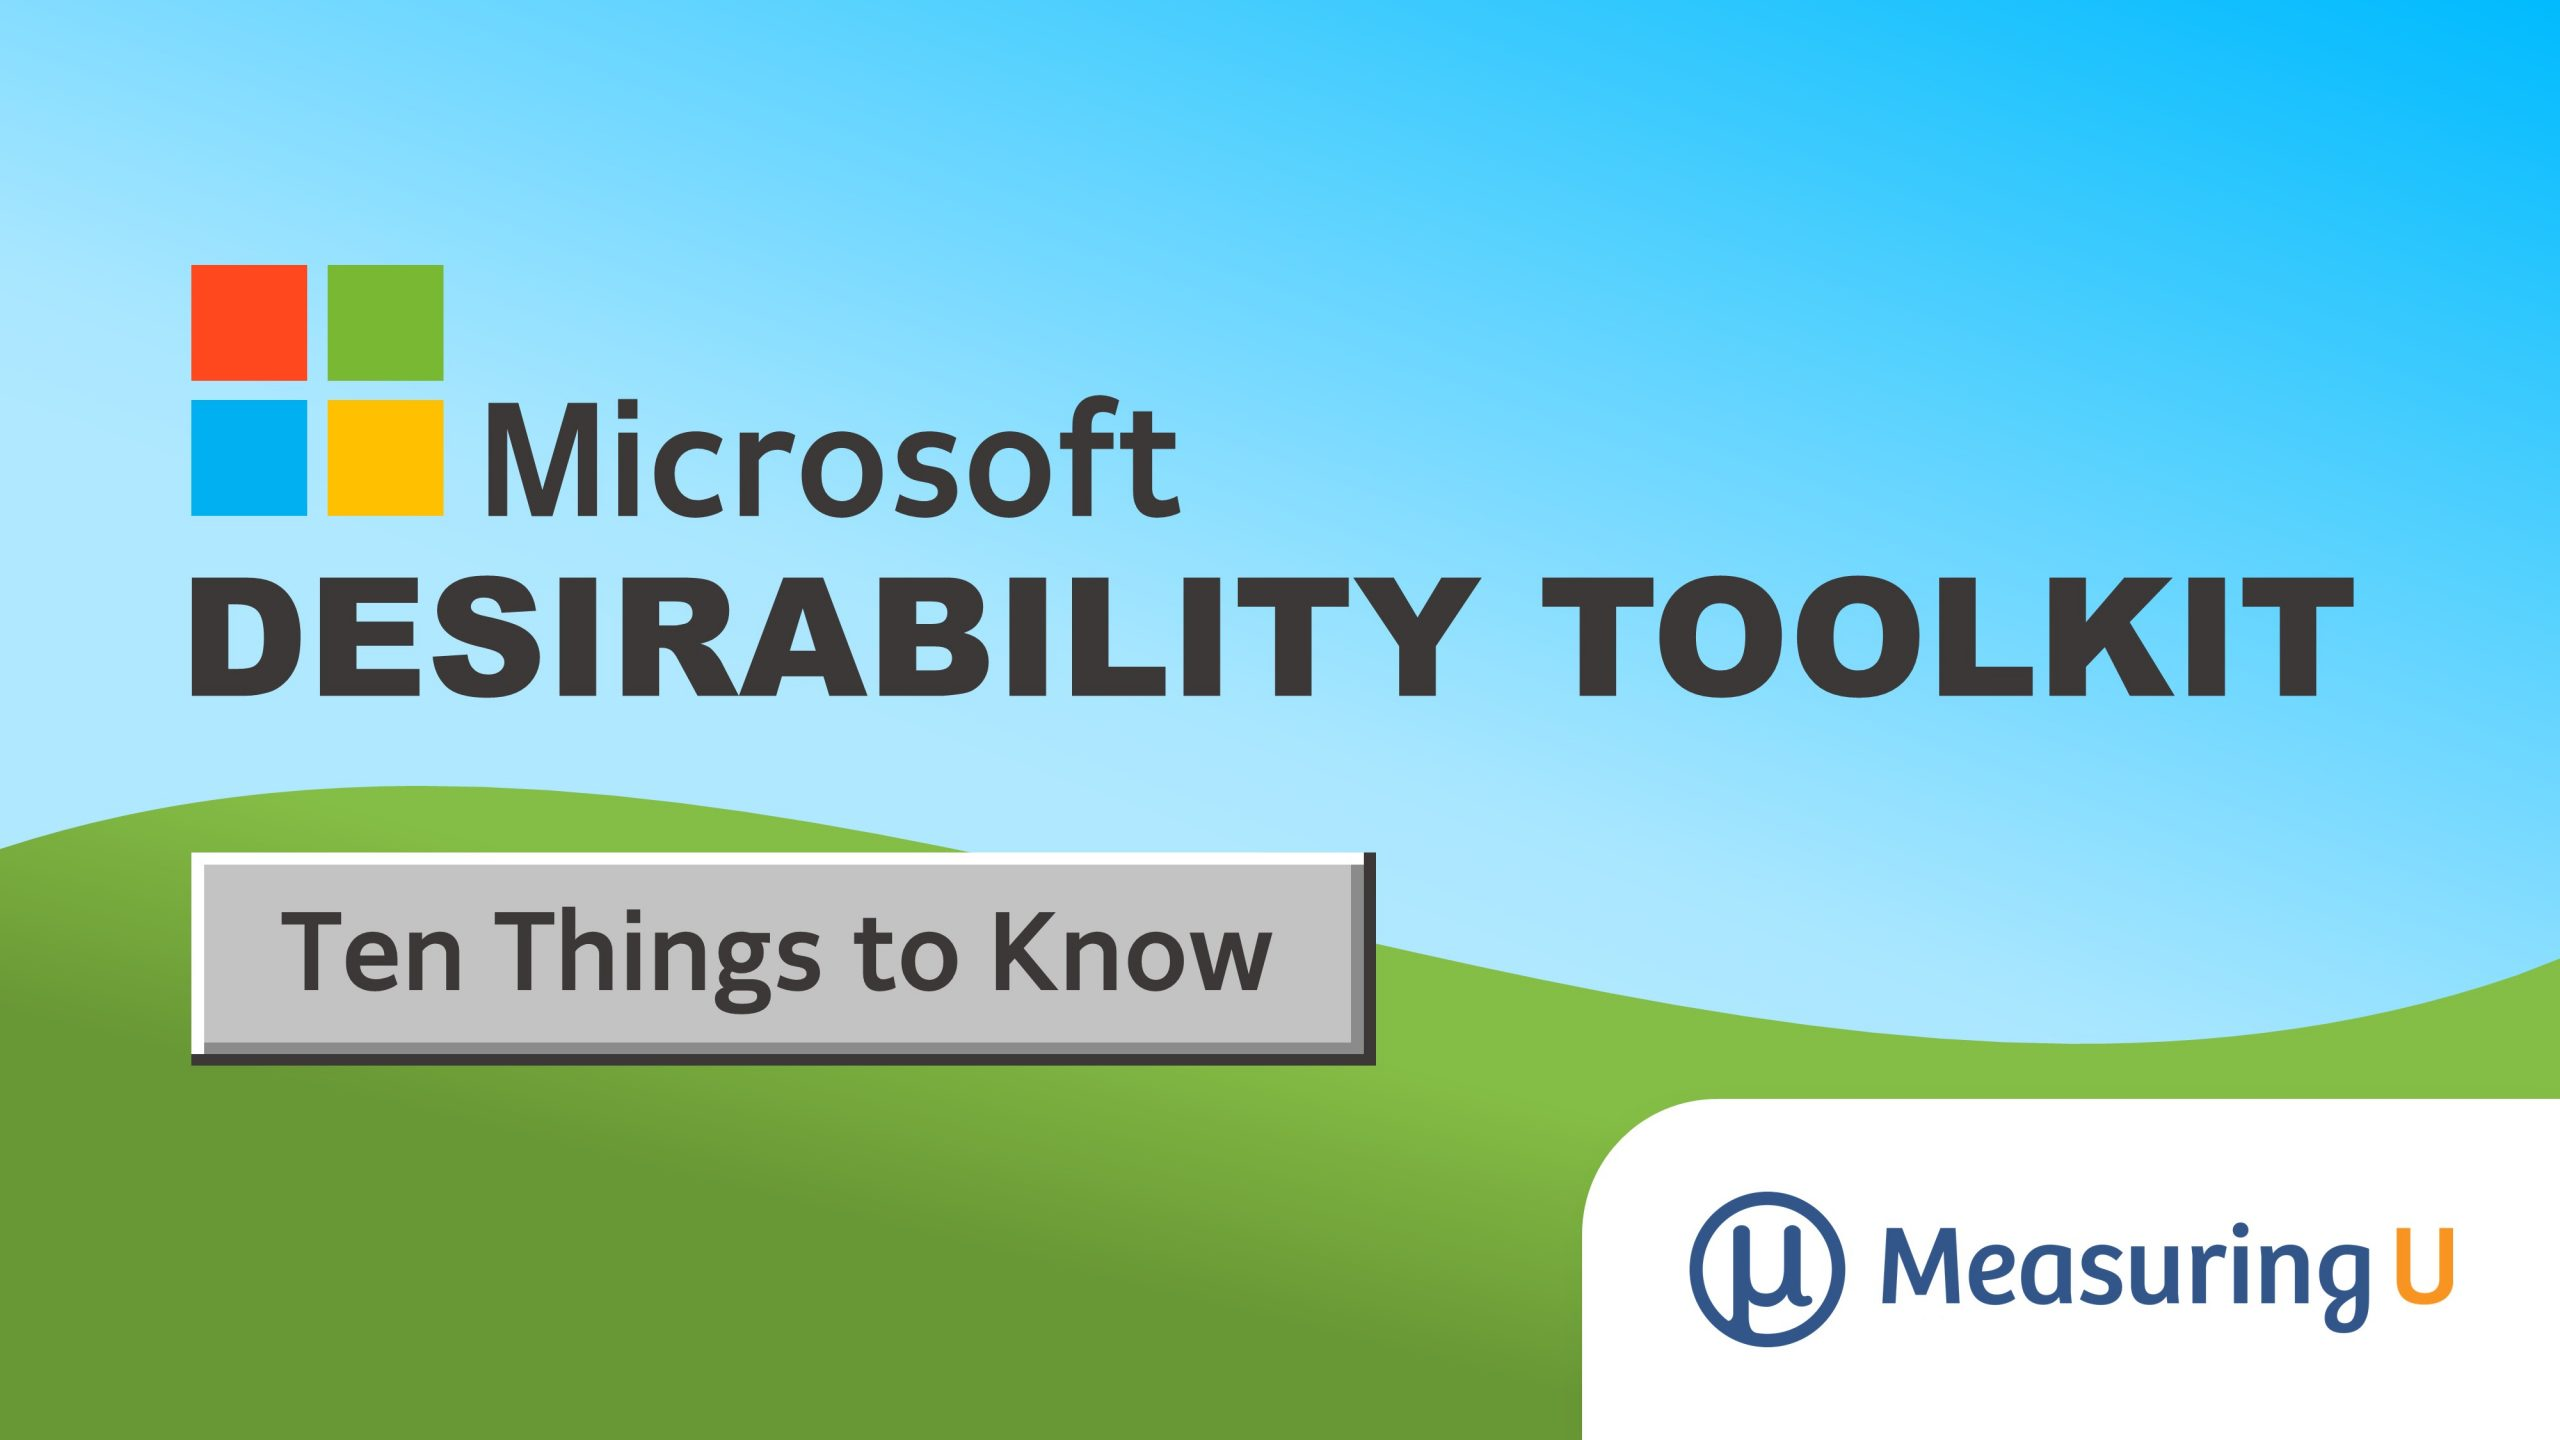 10 Things to Know about the Microsoft Desirability Toolkit